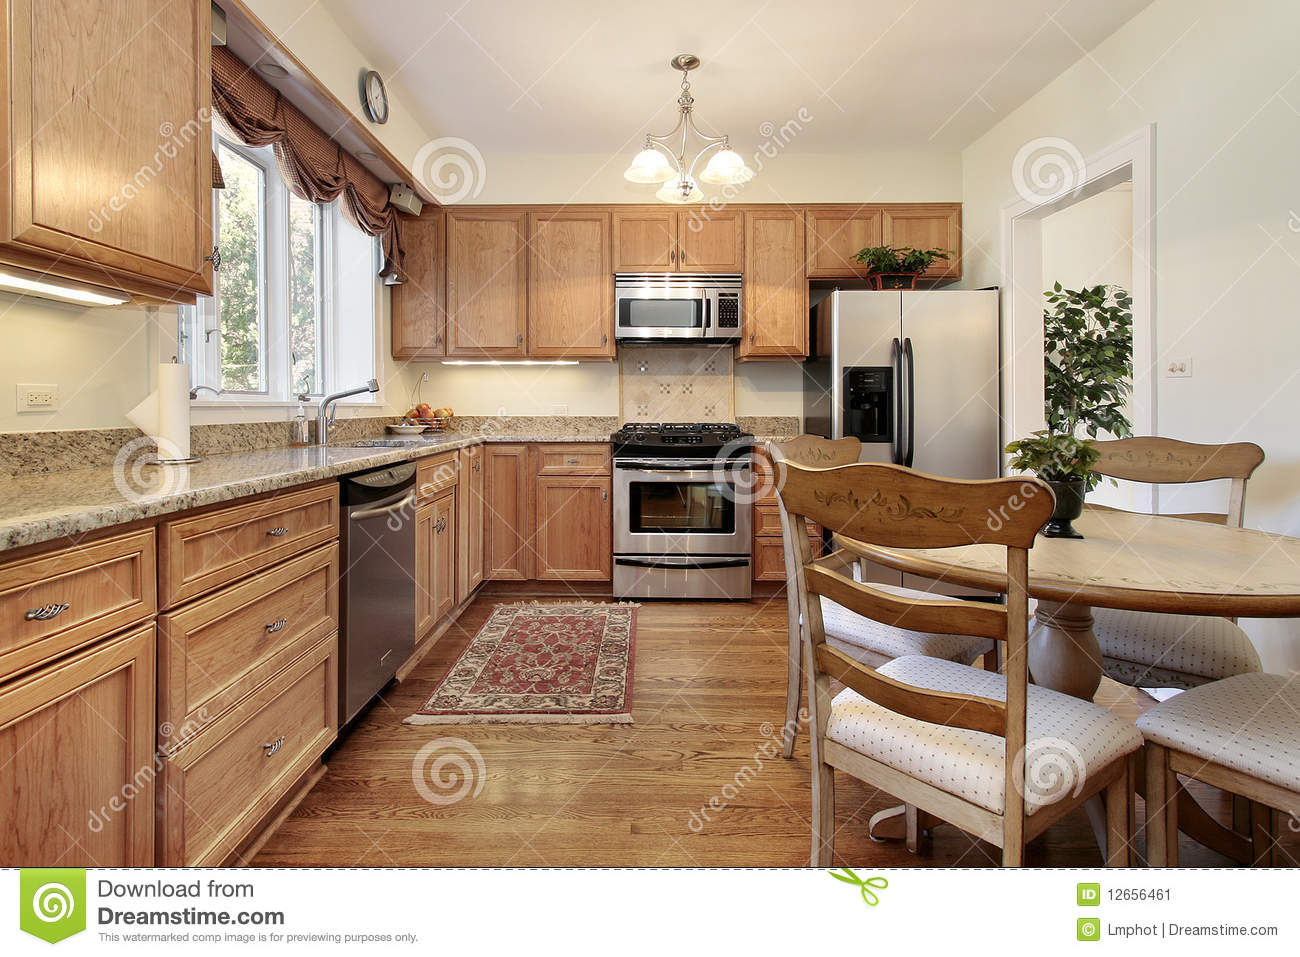 Kitchen Paneling Kitchen Paneling Pictures To Pin On Pinterest Pinsdaddy